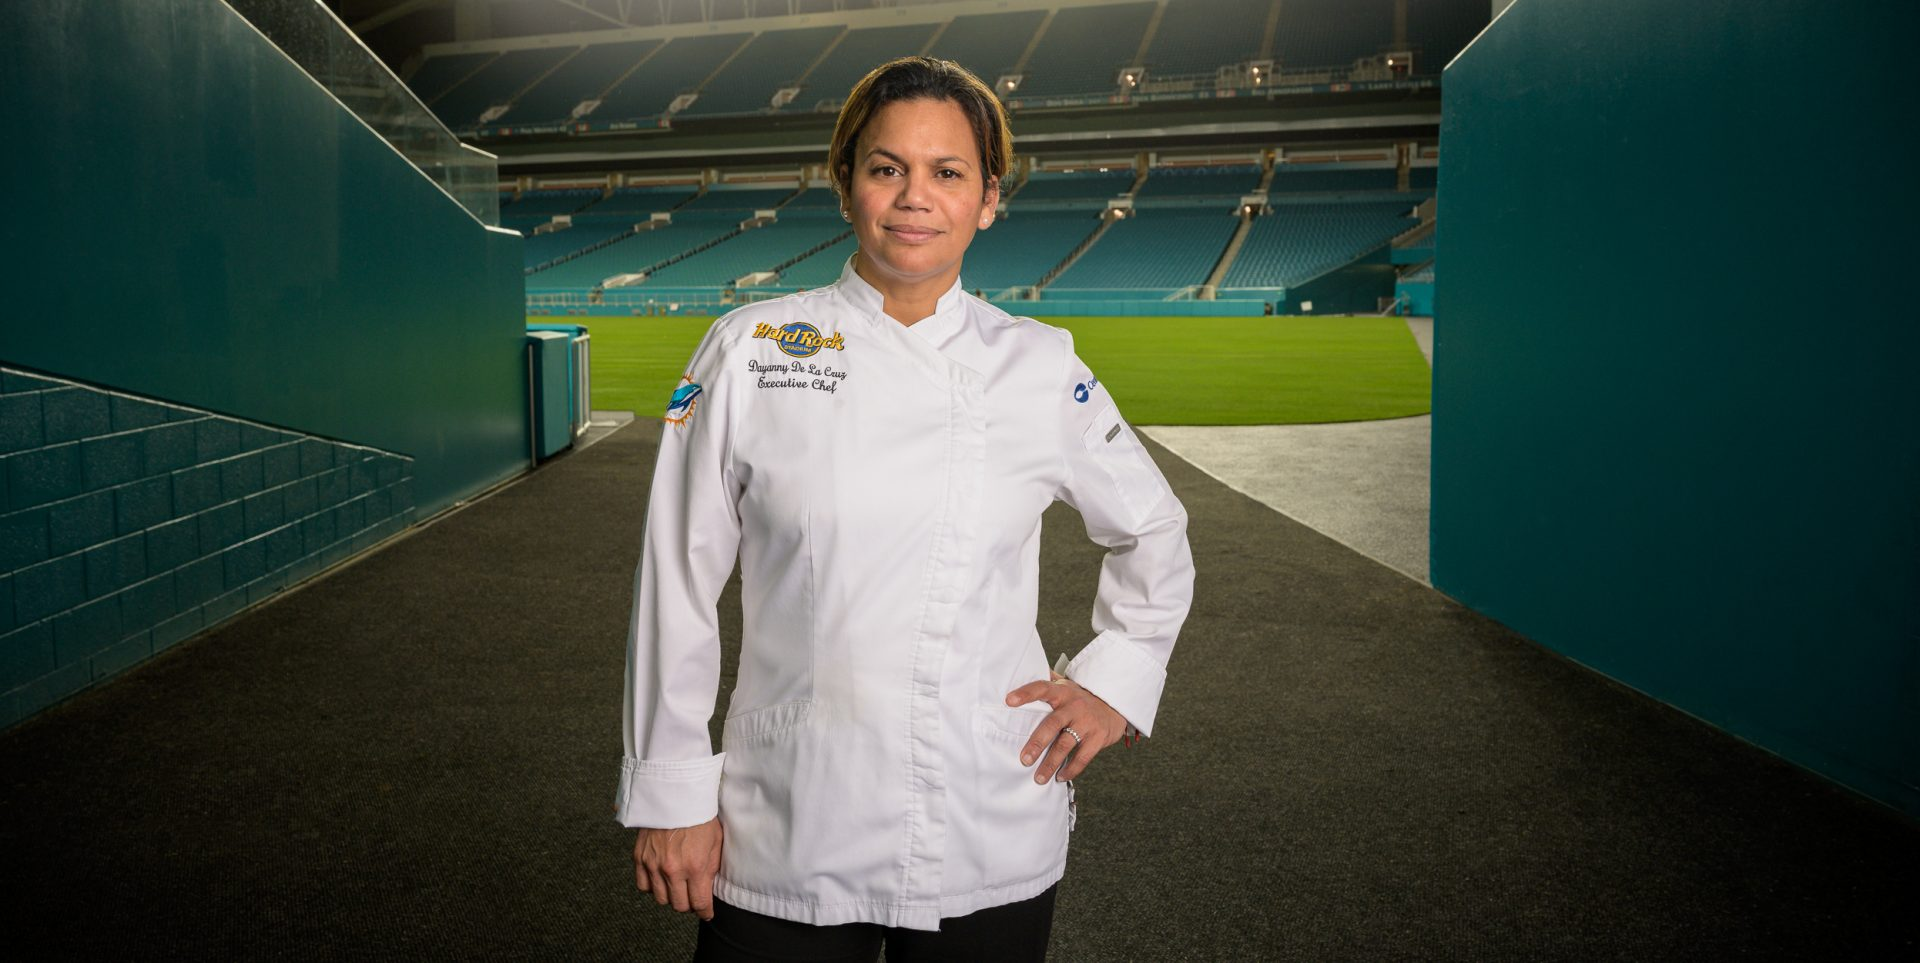 Super Bowl's First Female Executive Chef: Bring It On